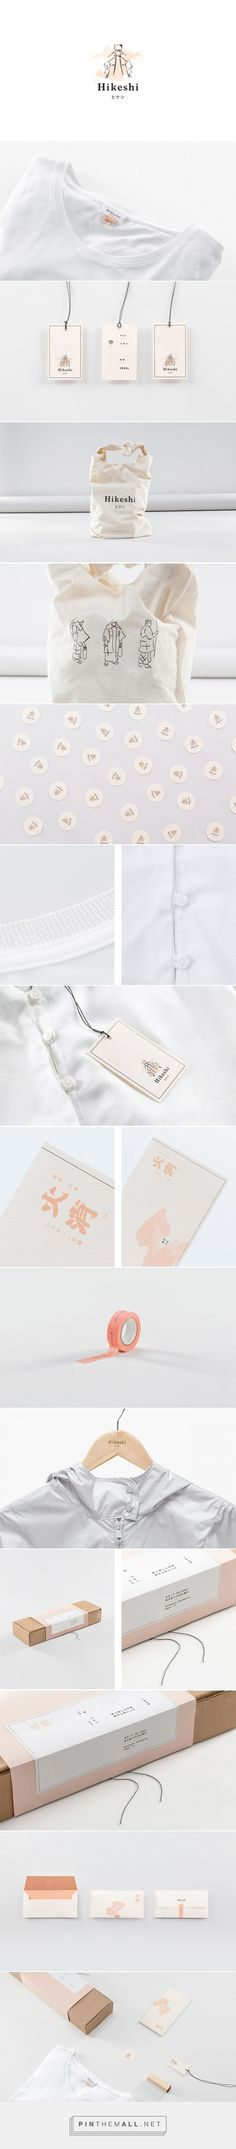 Hikeshi clothing packaging designed by Futura​ - http://www.packagingoftheworld.com/2015/08/hikeshi.html